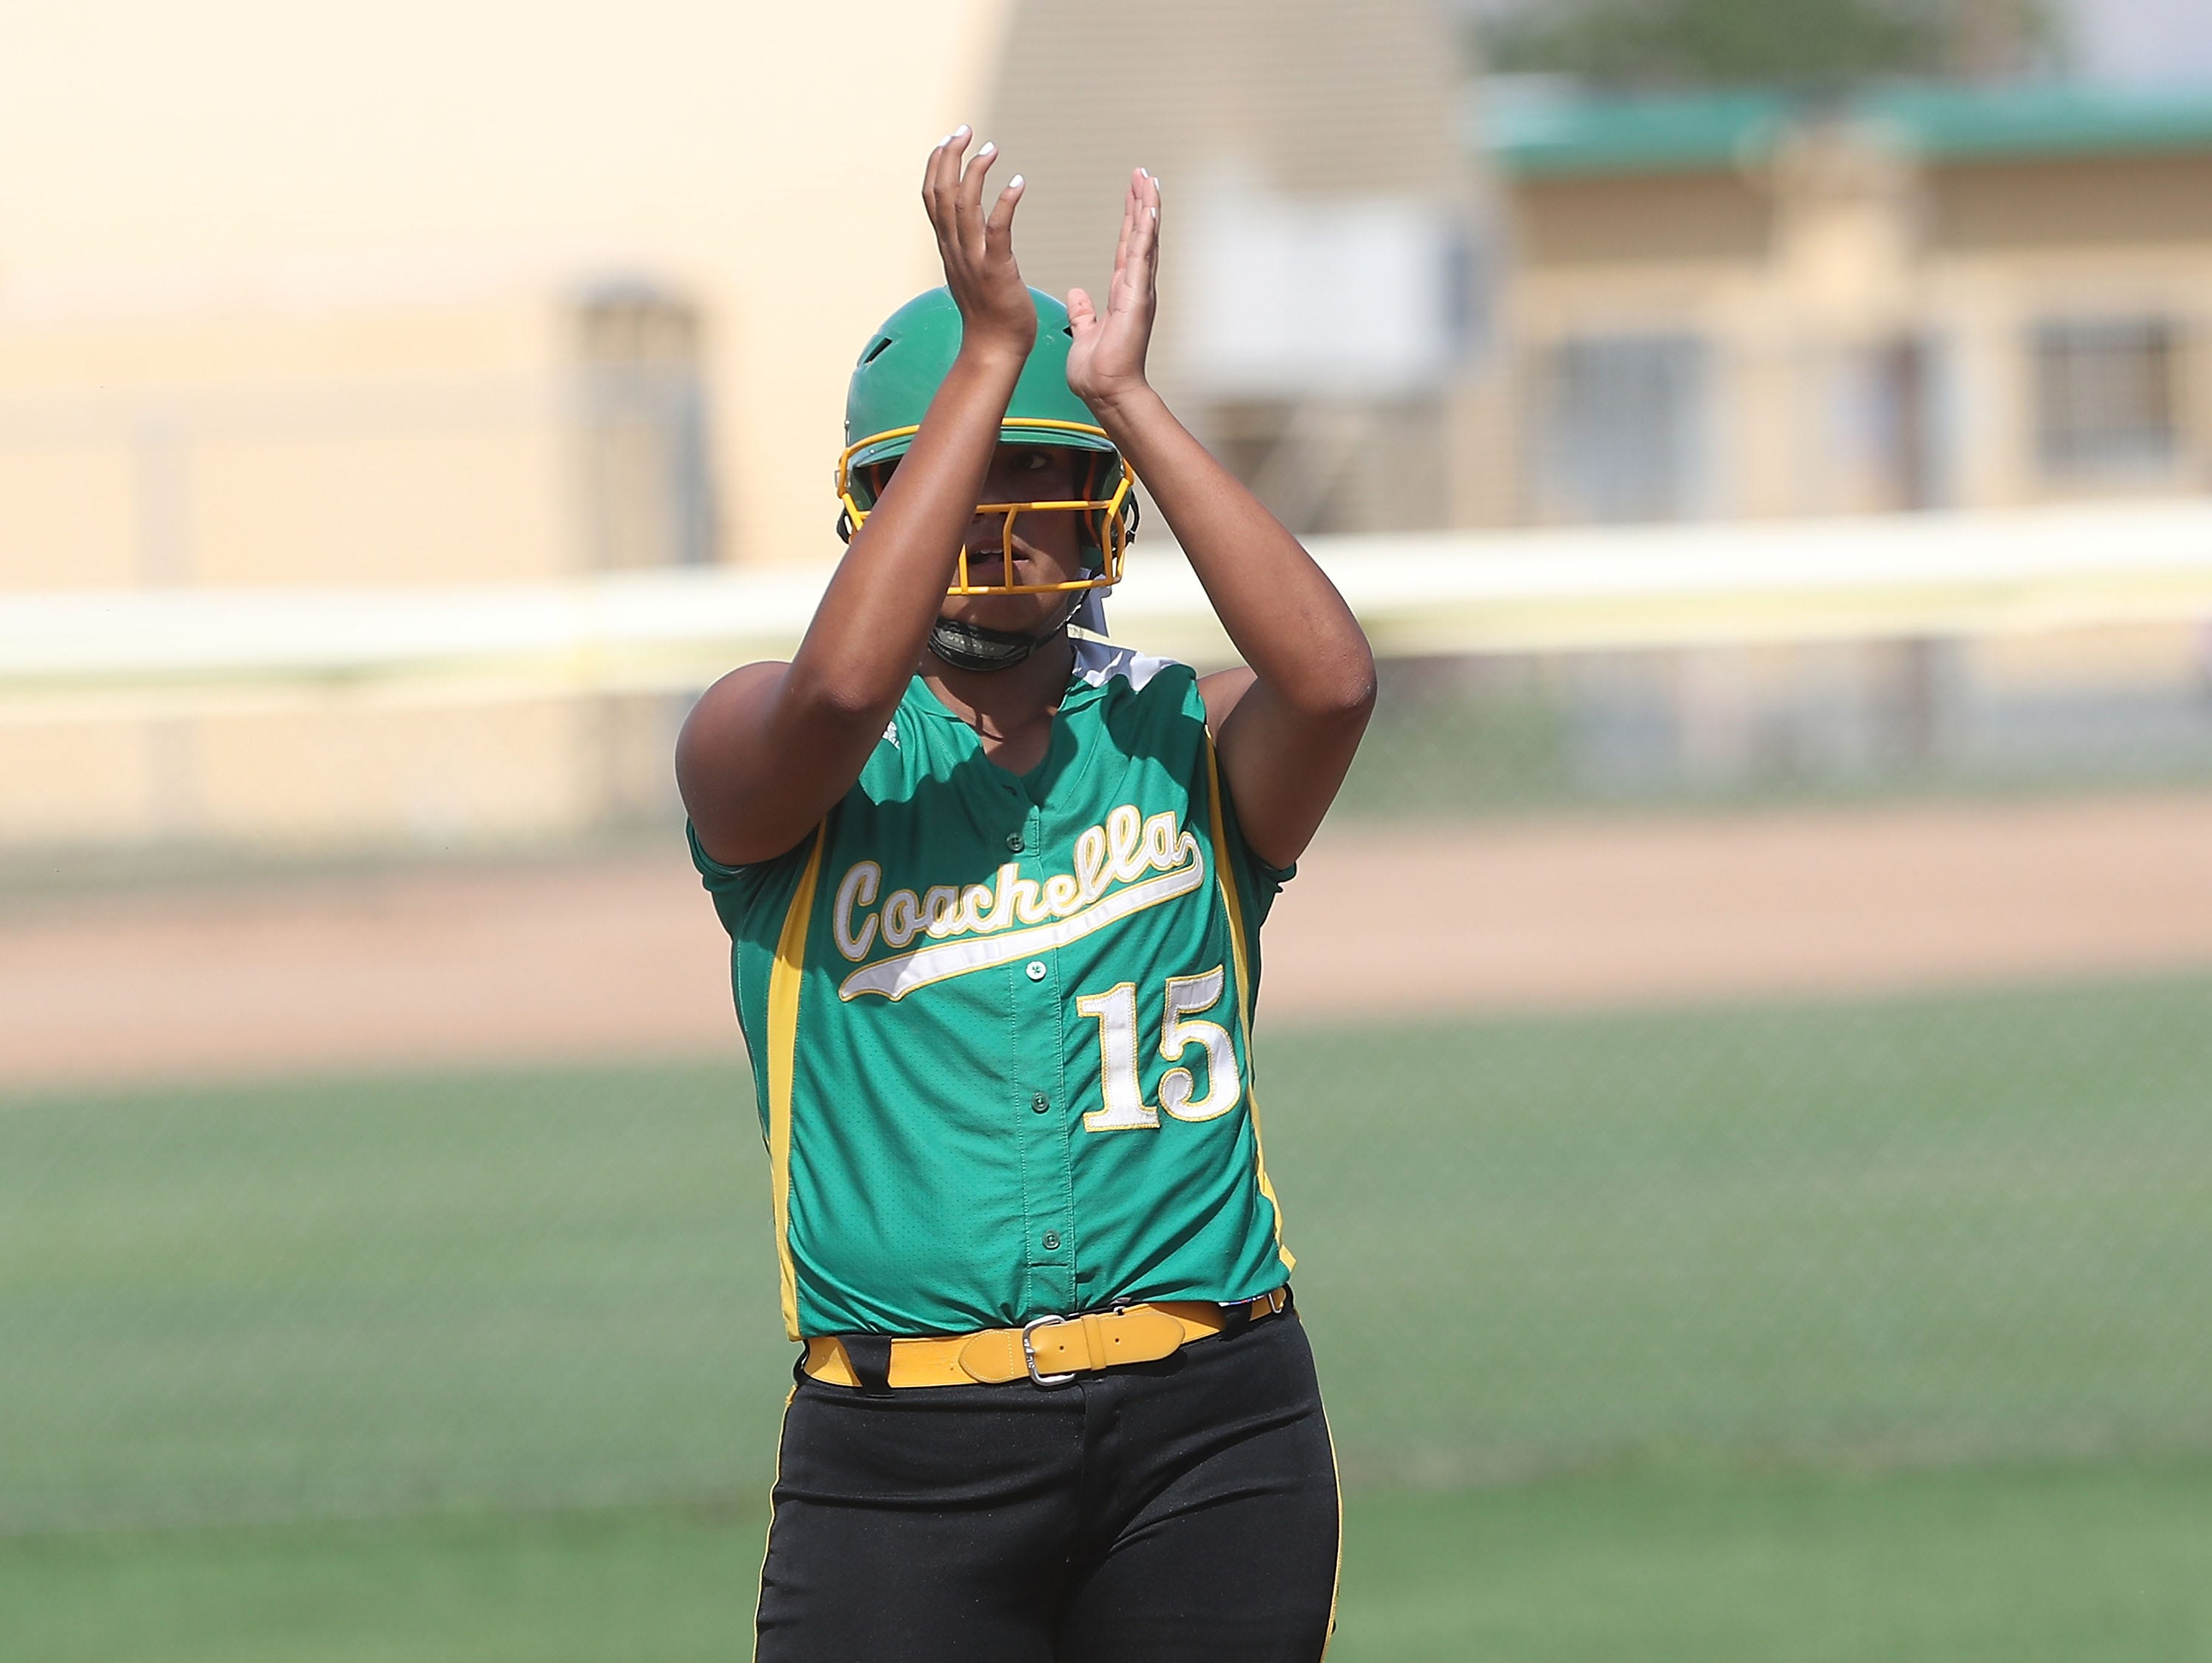 Cheyenne Sandoval of Coachella Valley hits a double against Anaheim during the Arabs loss, May 9, 2019.